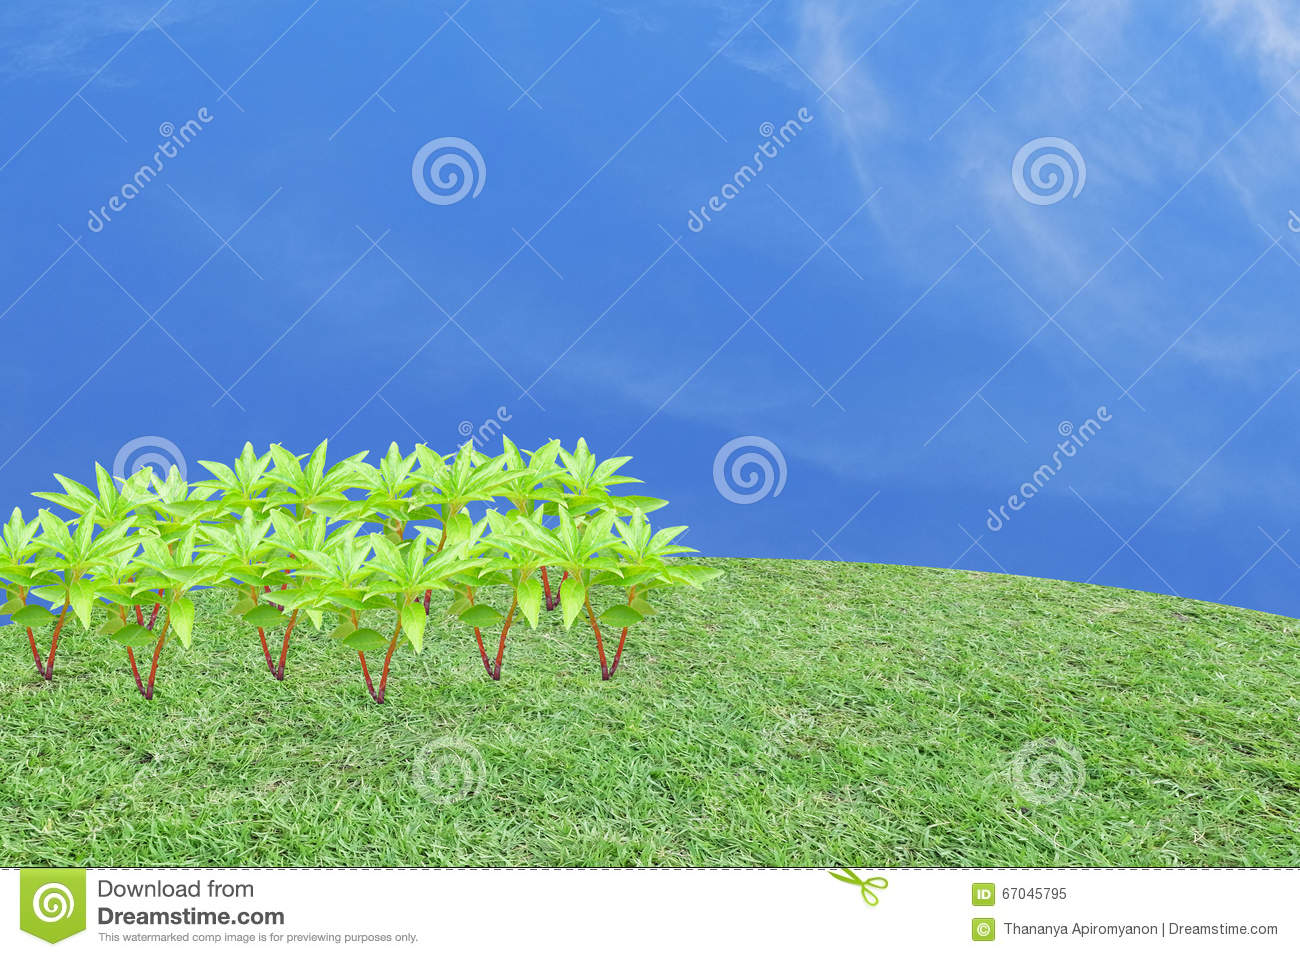 Many Henna Trees In The Left Side Of Frame On The Grass Field In